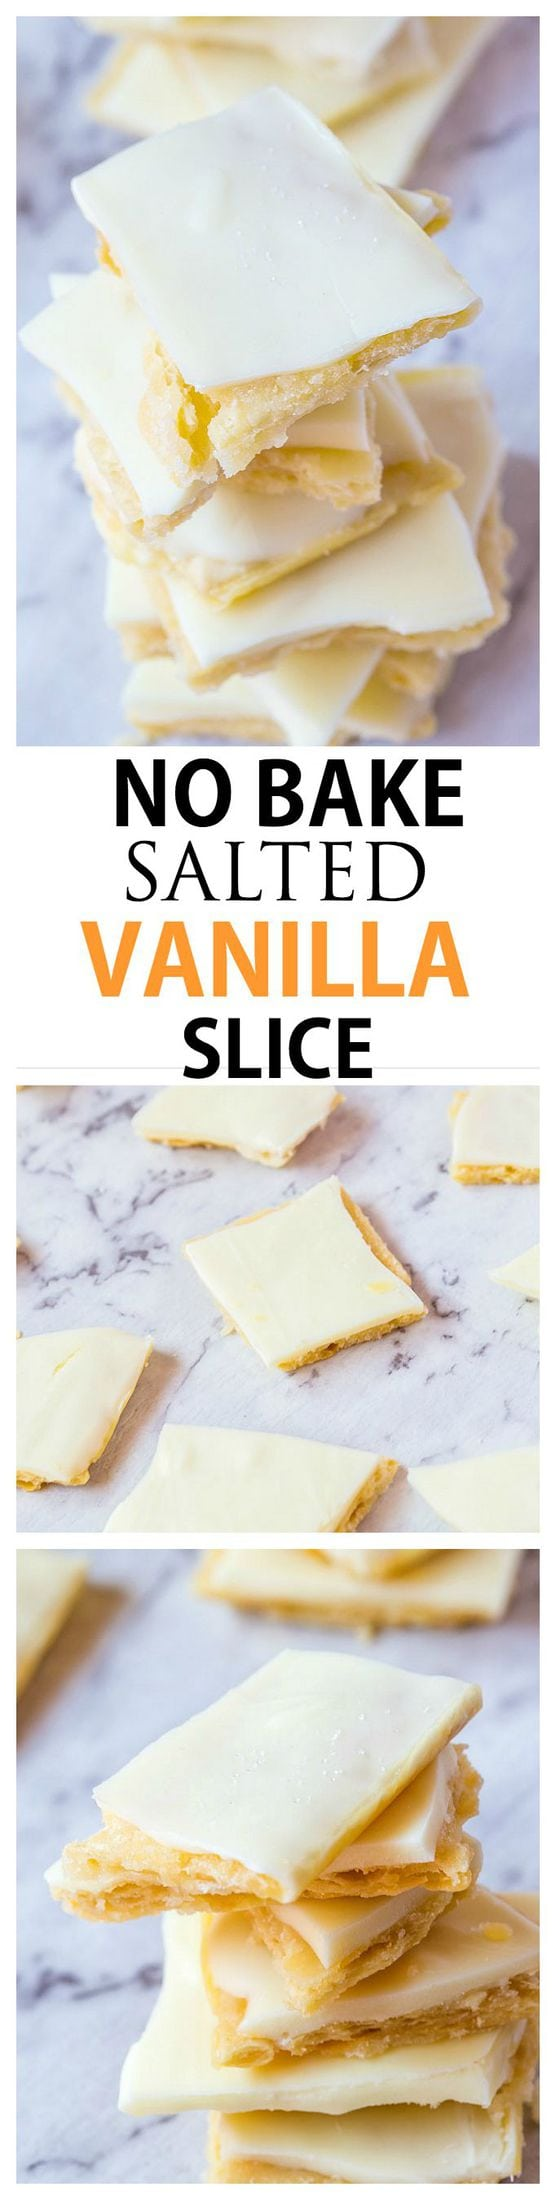 Healthy {3 INGREDIENT} No Bake Salted Vanilla Slice- One recipe. Three ways. This Healthy No Bake Salted Vanilla Slice requires just THREE ingredients to whip up and depending on which method you choose, can be vegan, gluten free and refined sugar free! If all else fails, try the fool proof version!